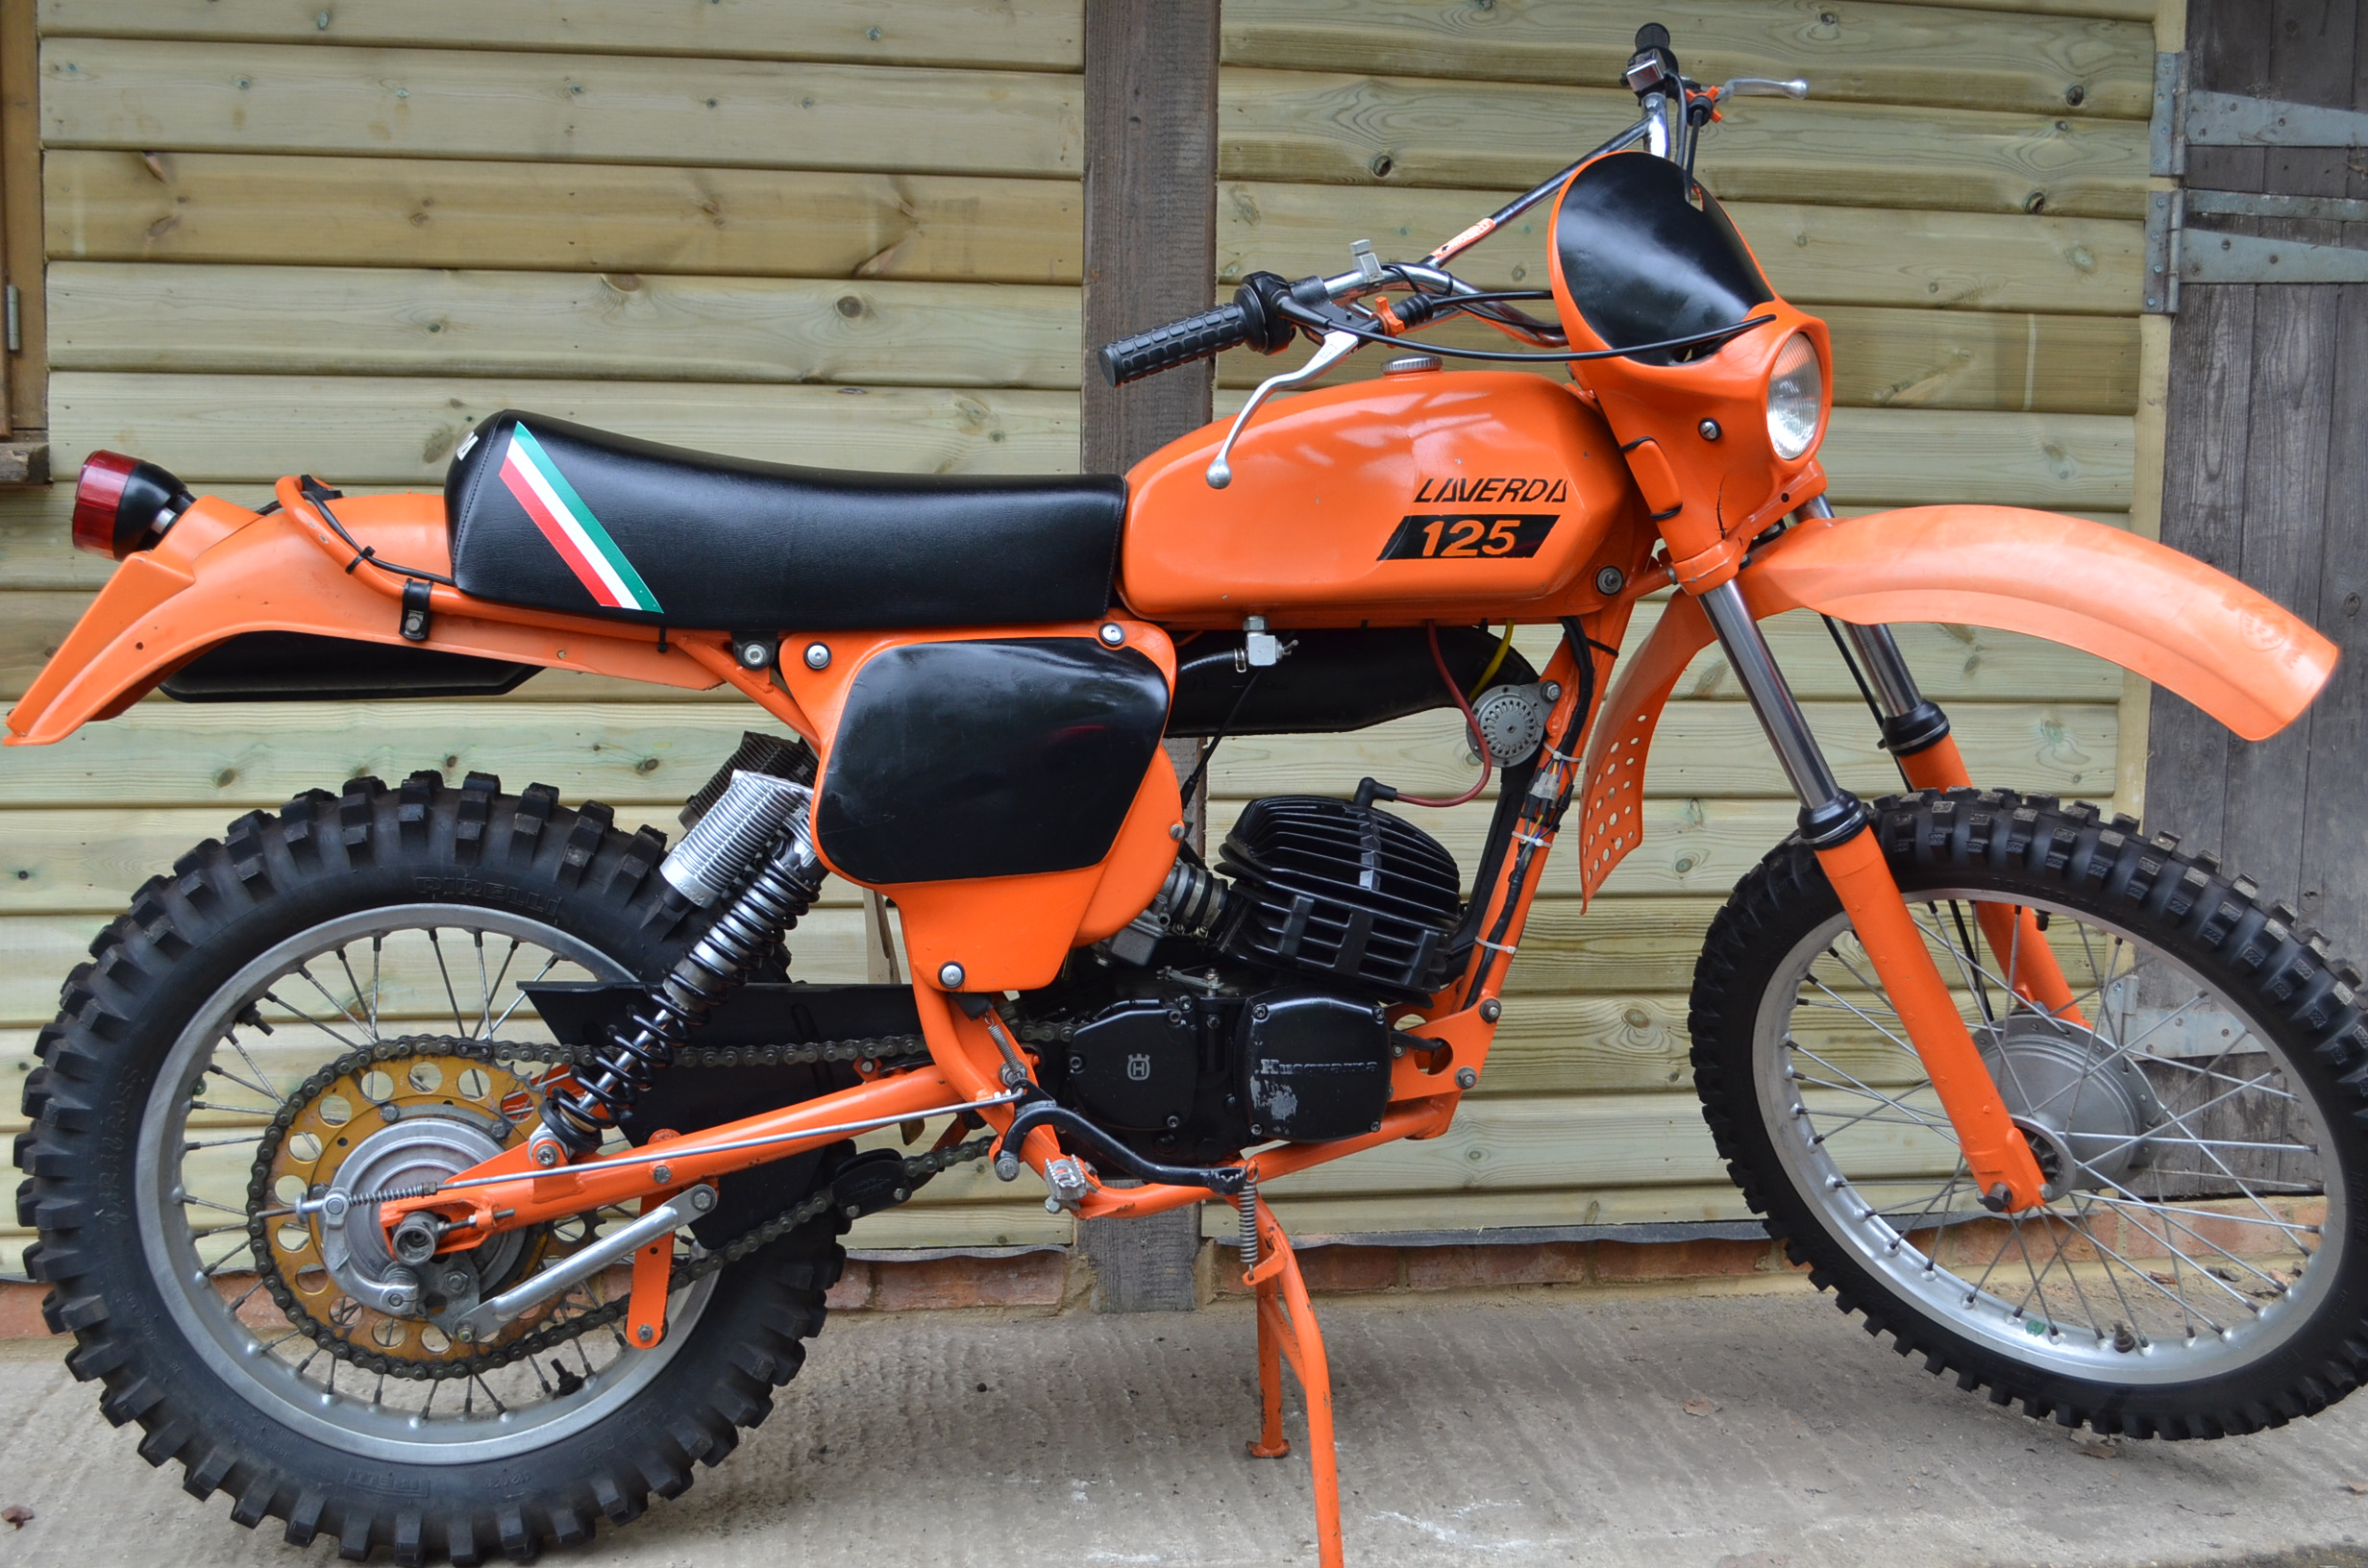 1978 ducati 125 enduro pics specs and information. Black Bedroom Furniture Sets. Home Design Ideas